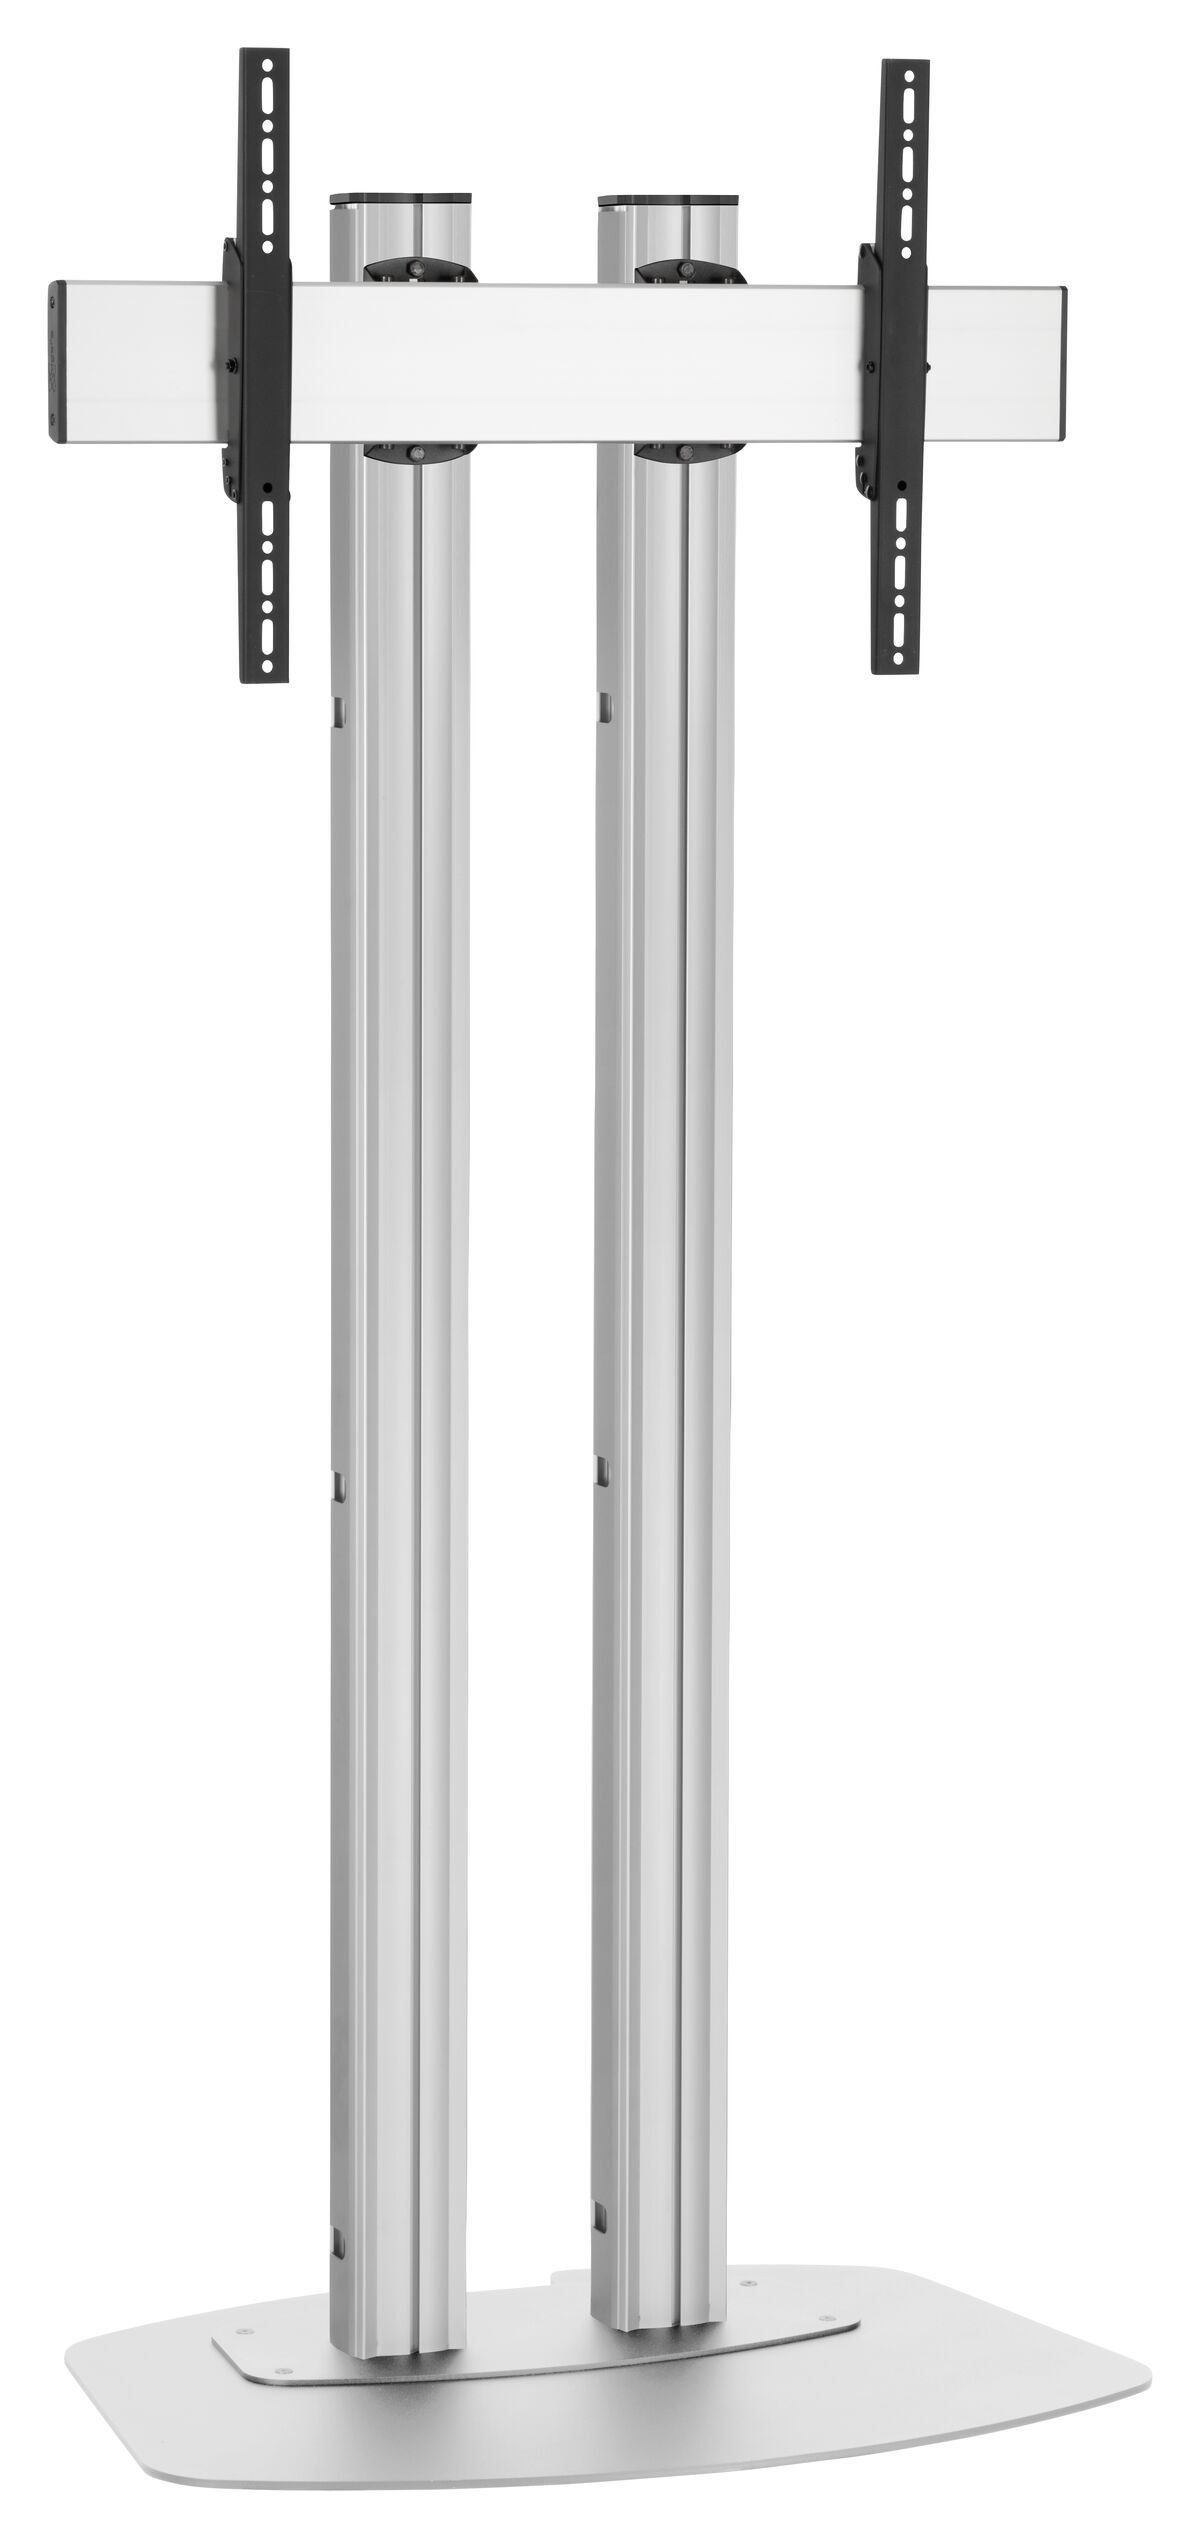 Vogel's FD1864S Floor stand - Product